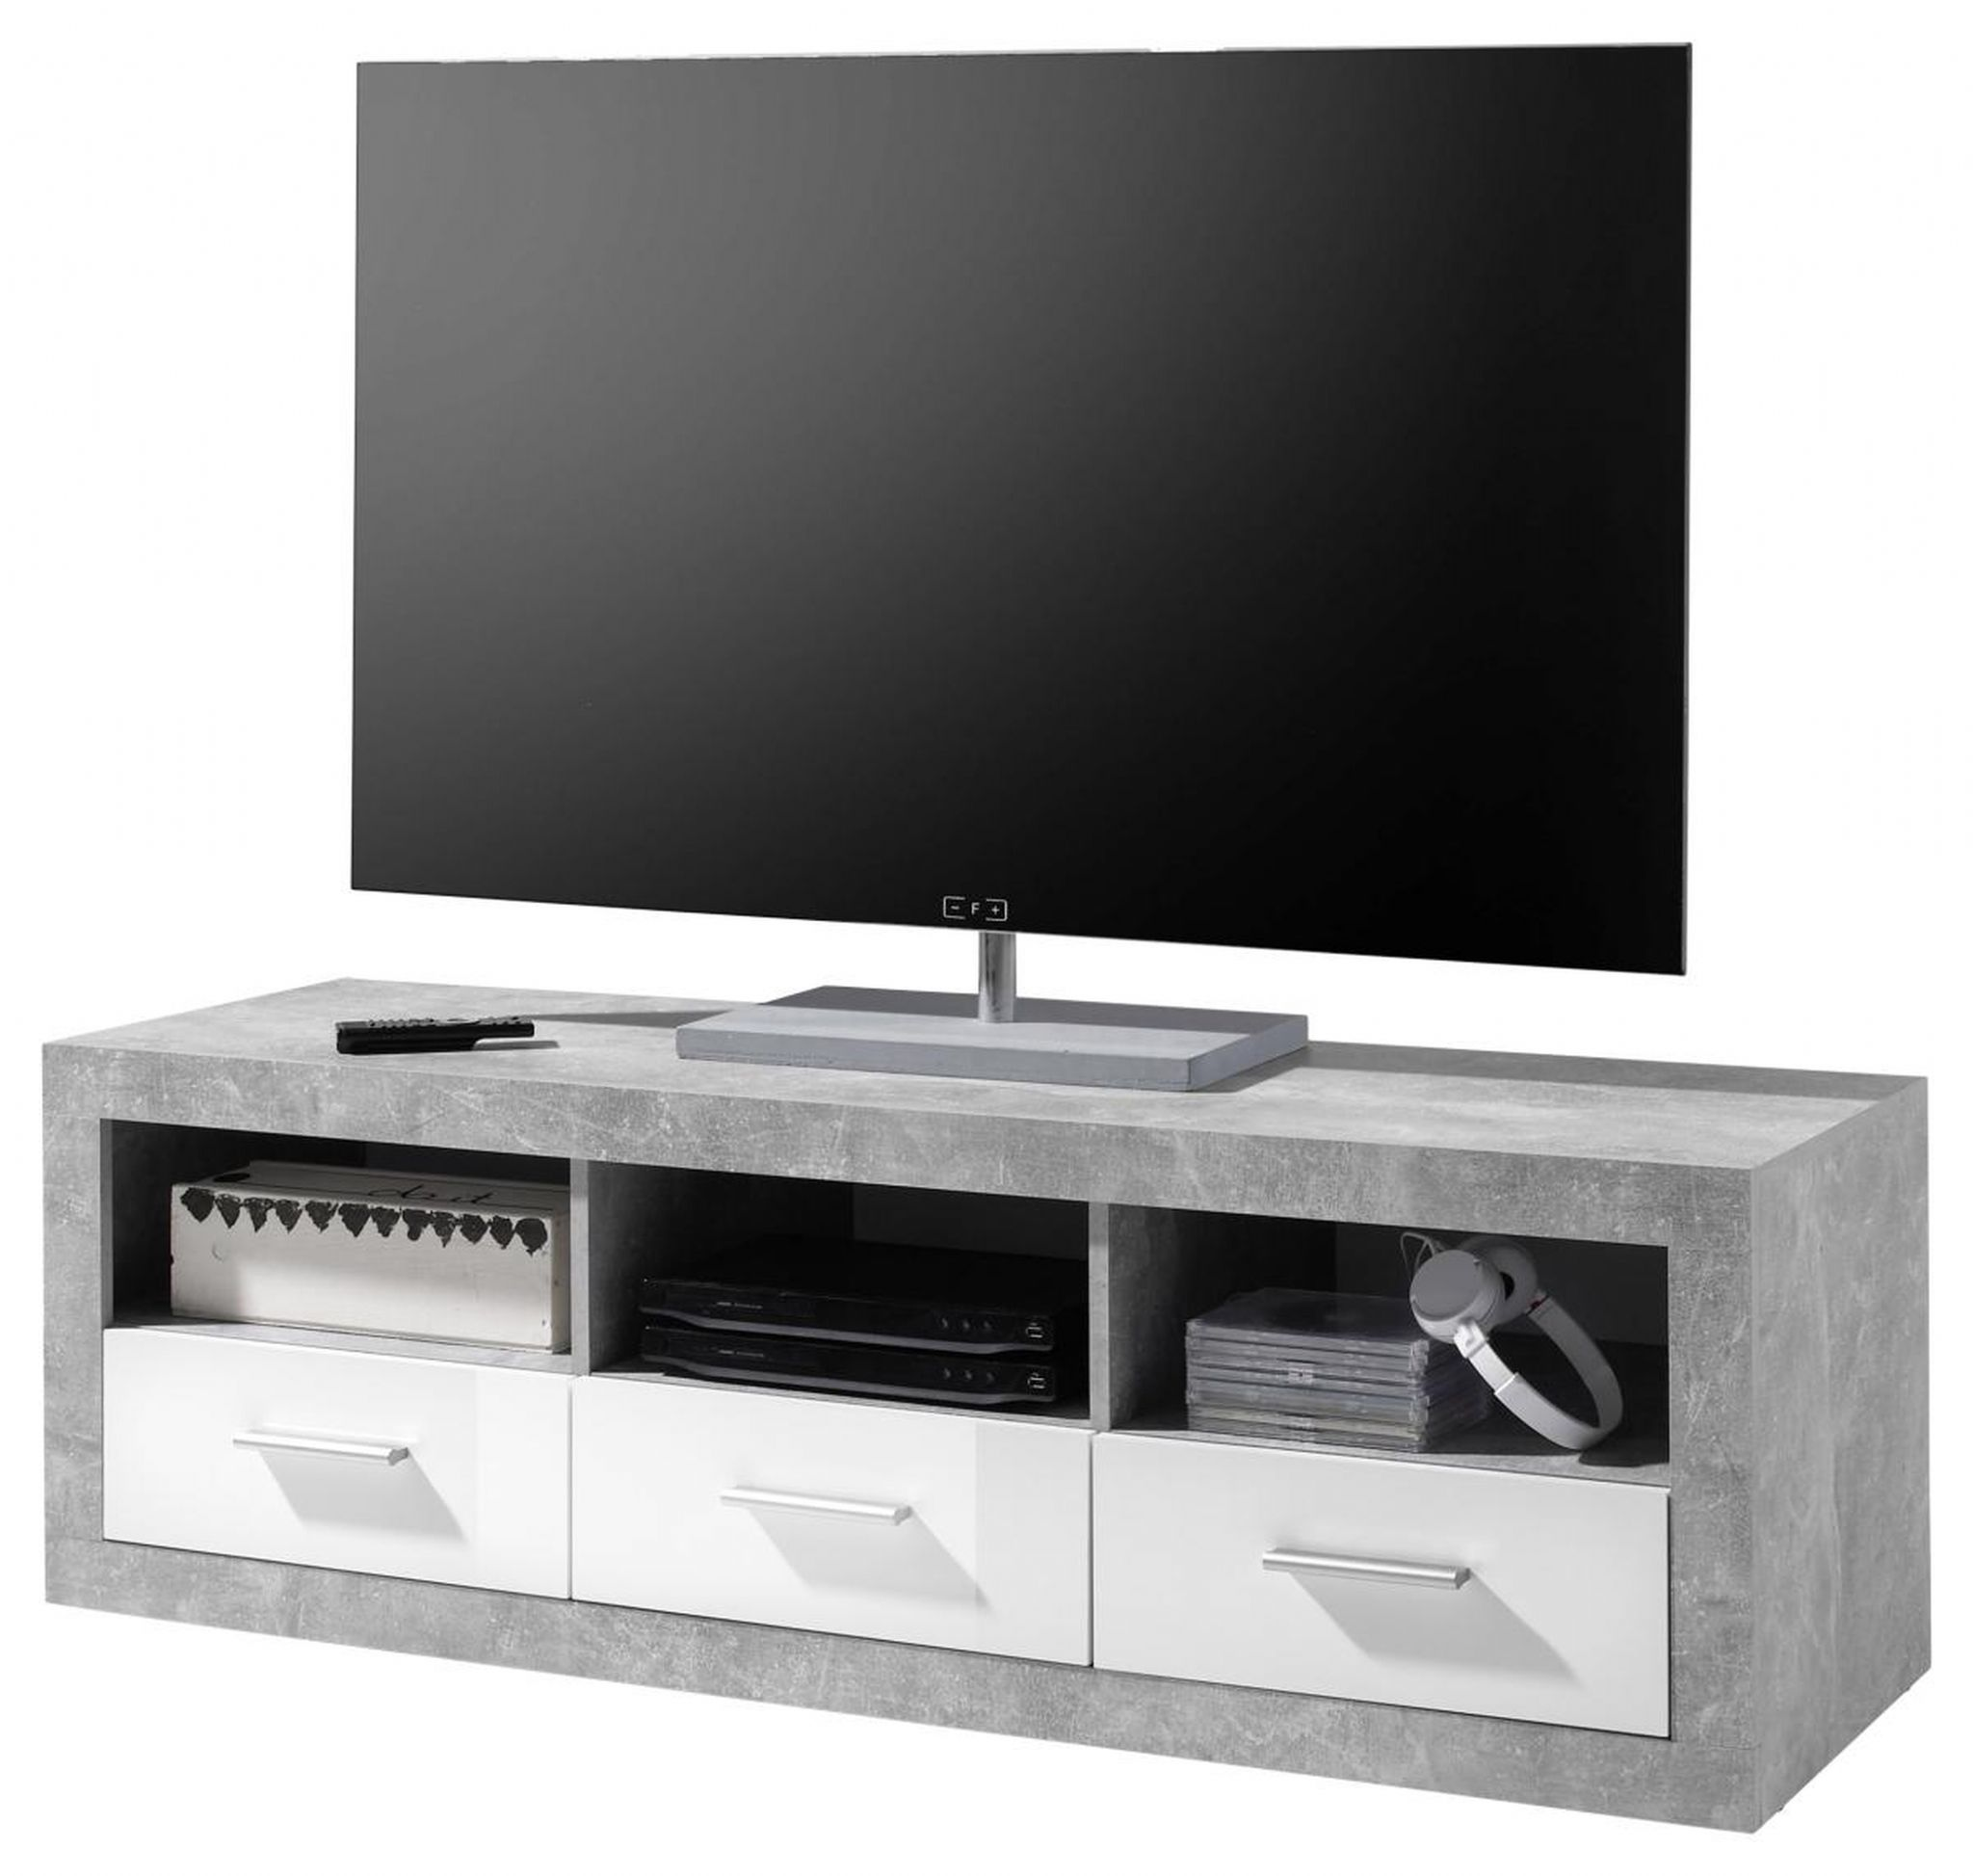 White Gloss Drawers Greystone Grey And White Gloss Tv Cabinet With Drawers 2700